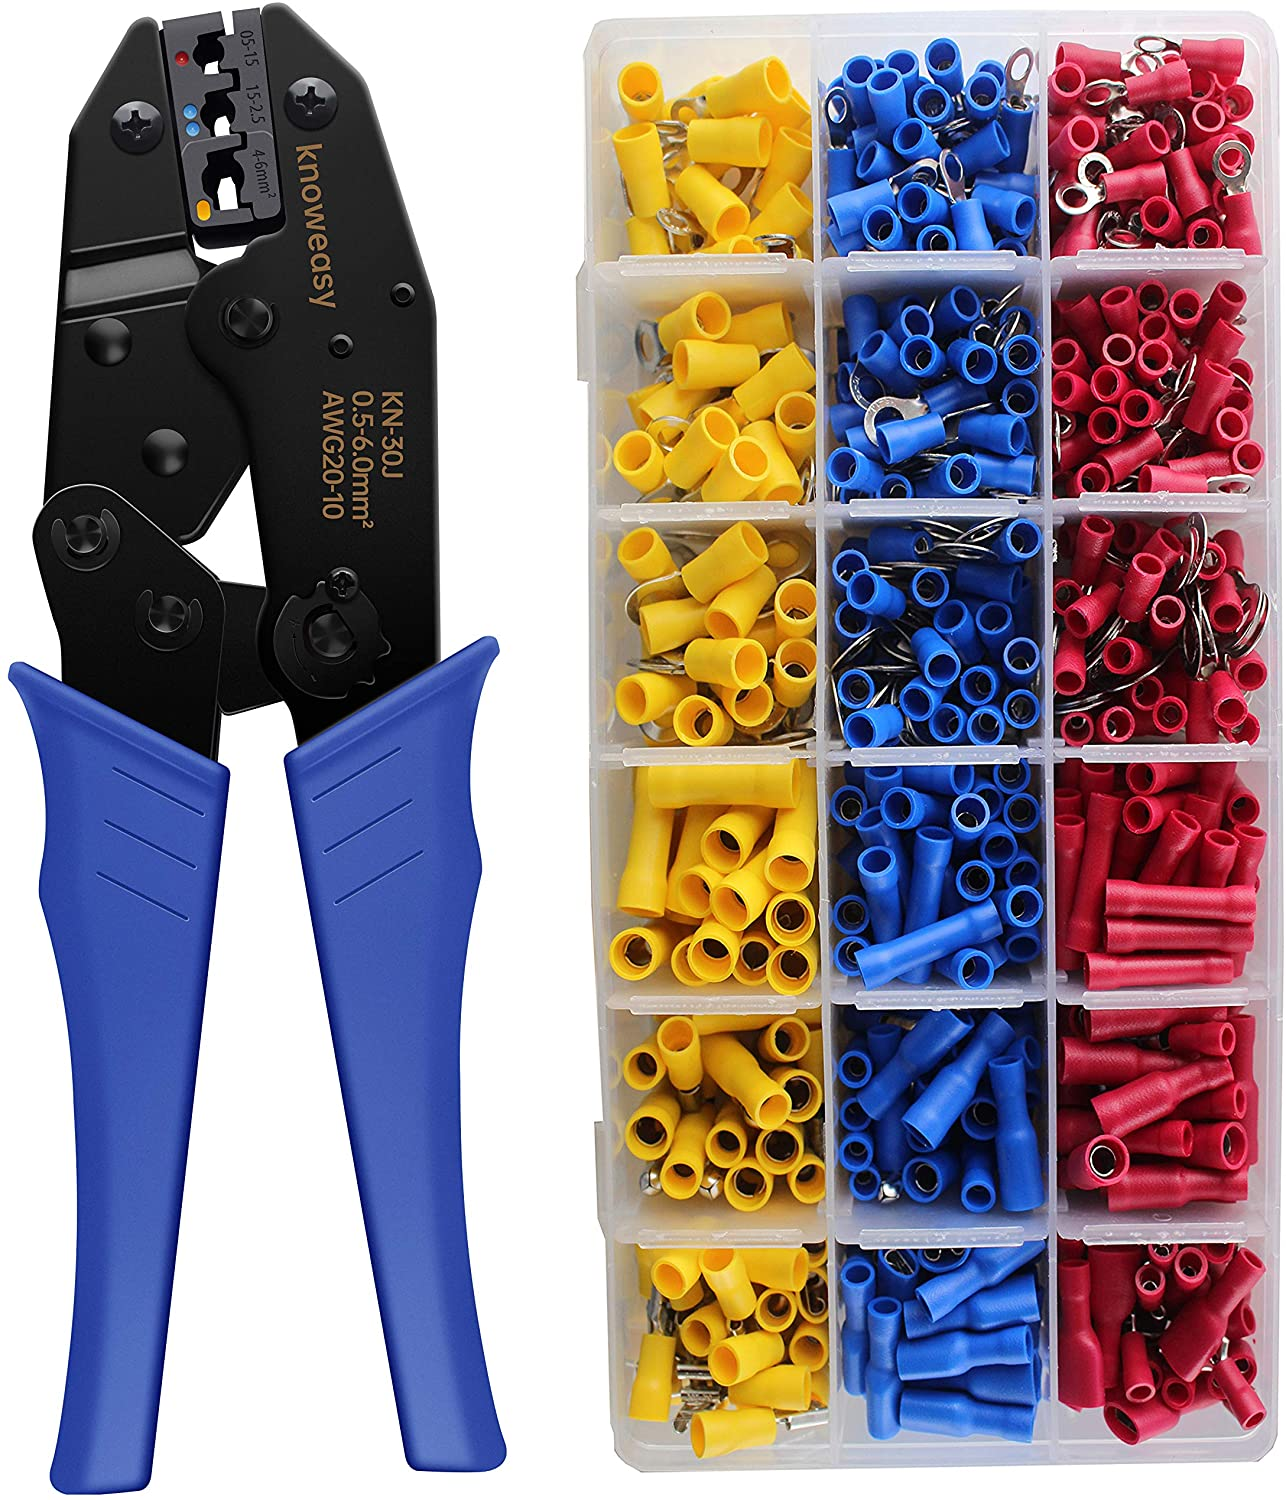 Wire Terminals Crimper Kit, Knoweasy Insulated Ratcheting Terminals Crimper Set of AWG22-10 with 700PCS of Insulated Butt Bullet Spade Fork Ring Crimp Terminals Connectors